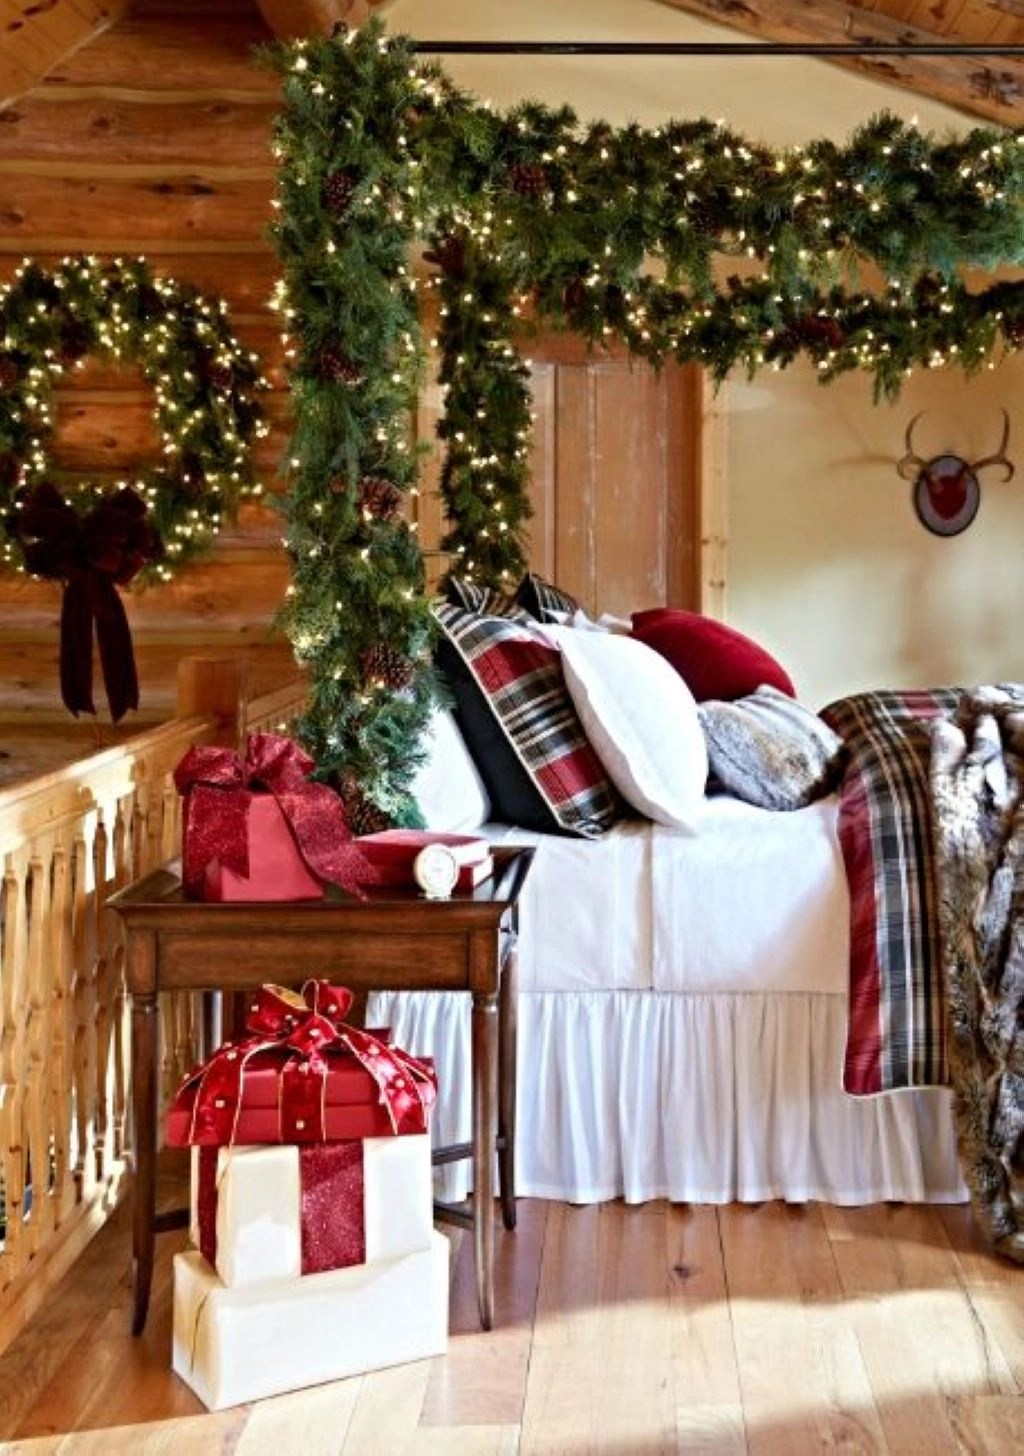 Diy bed in house has christmas bedding at the holiday